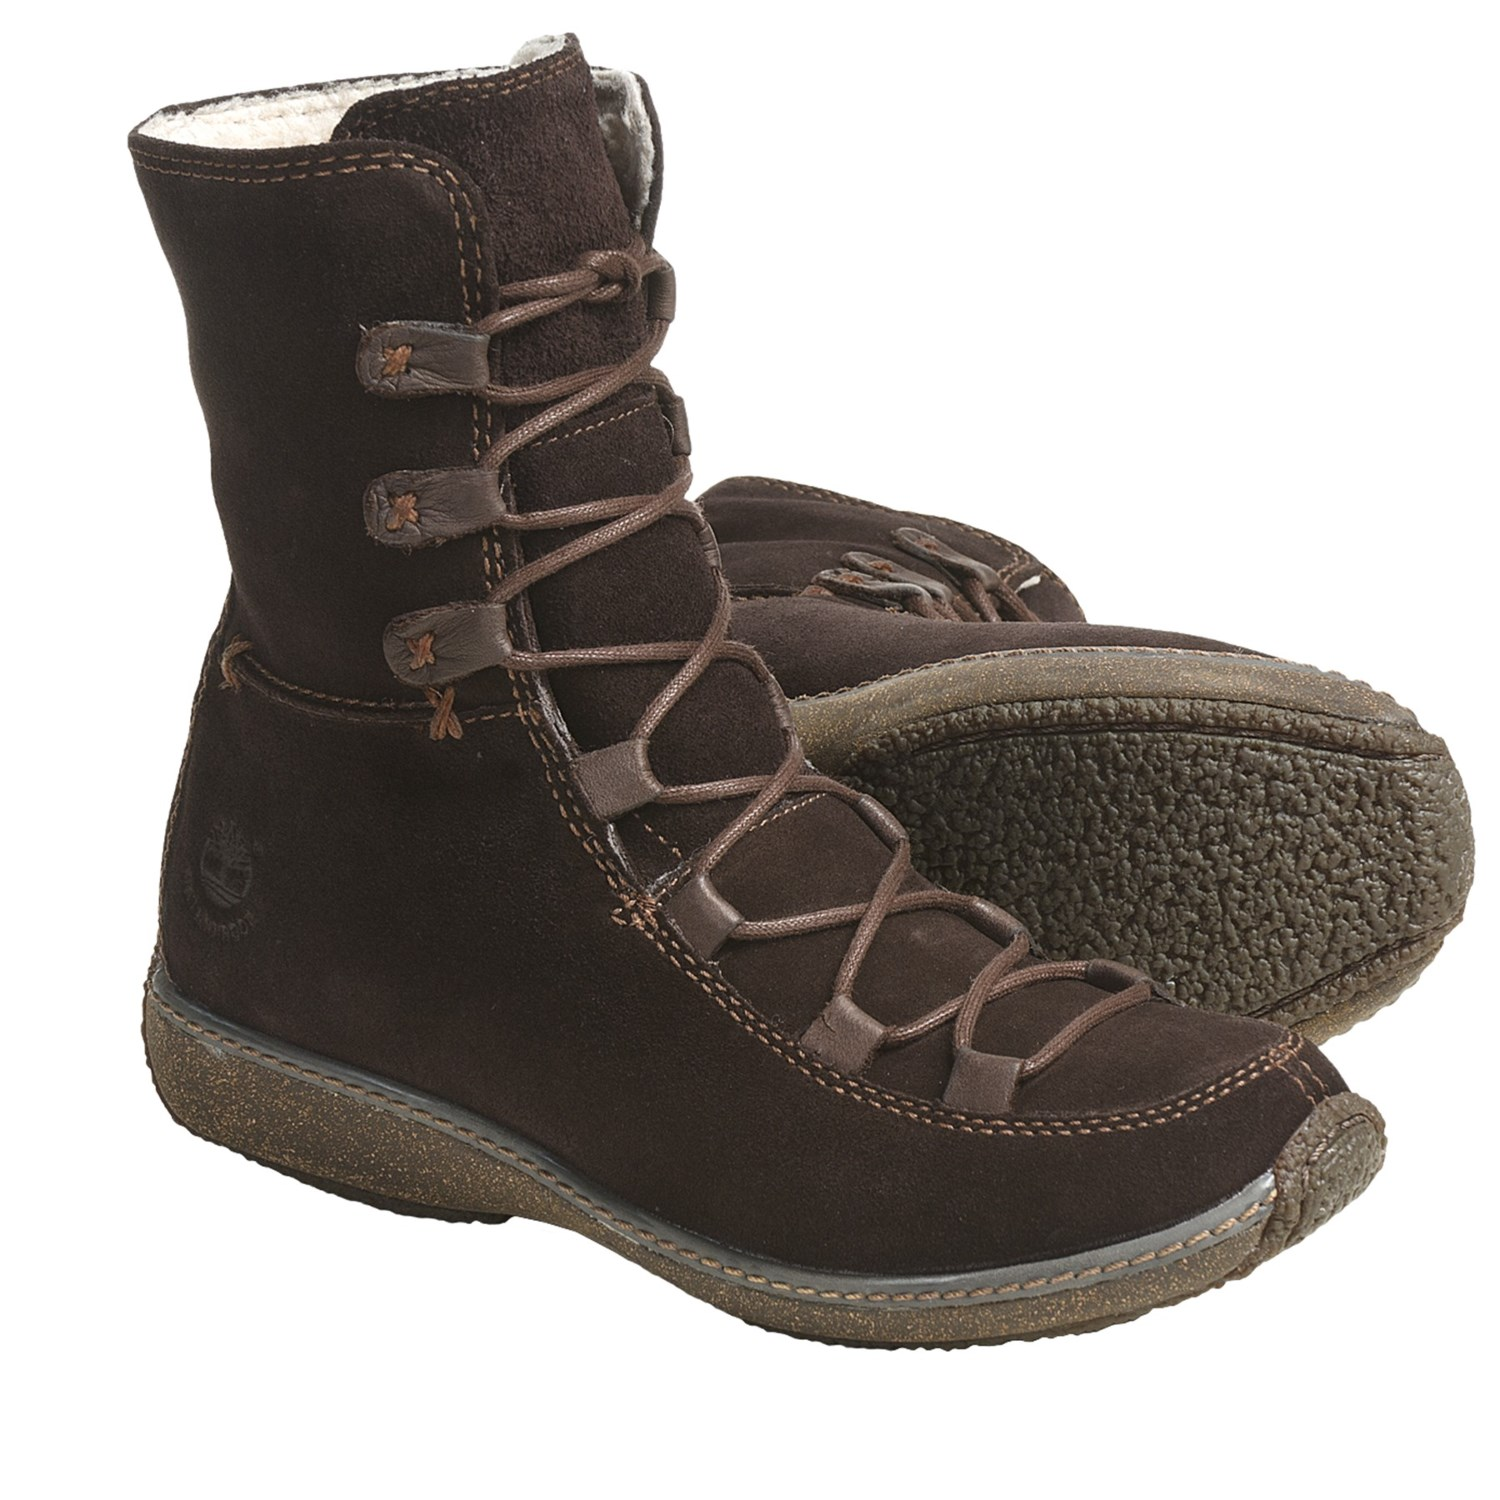 timberland reykir winter boots for women 4072a save 36. Black Bedroom Furniture Sets. Home Design Ideas